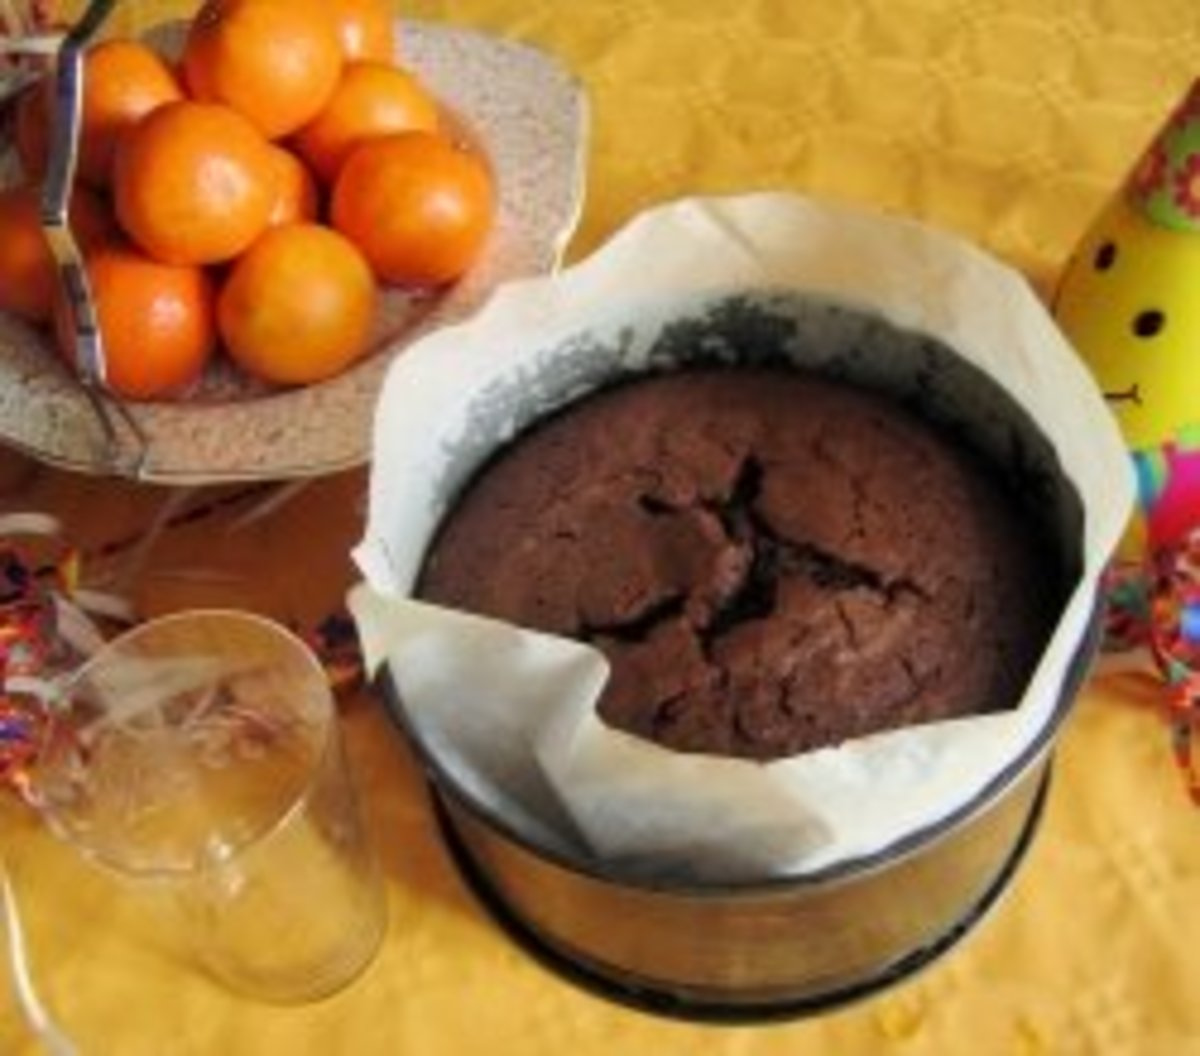 Parchment lined cake tin.